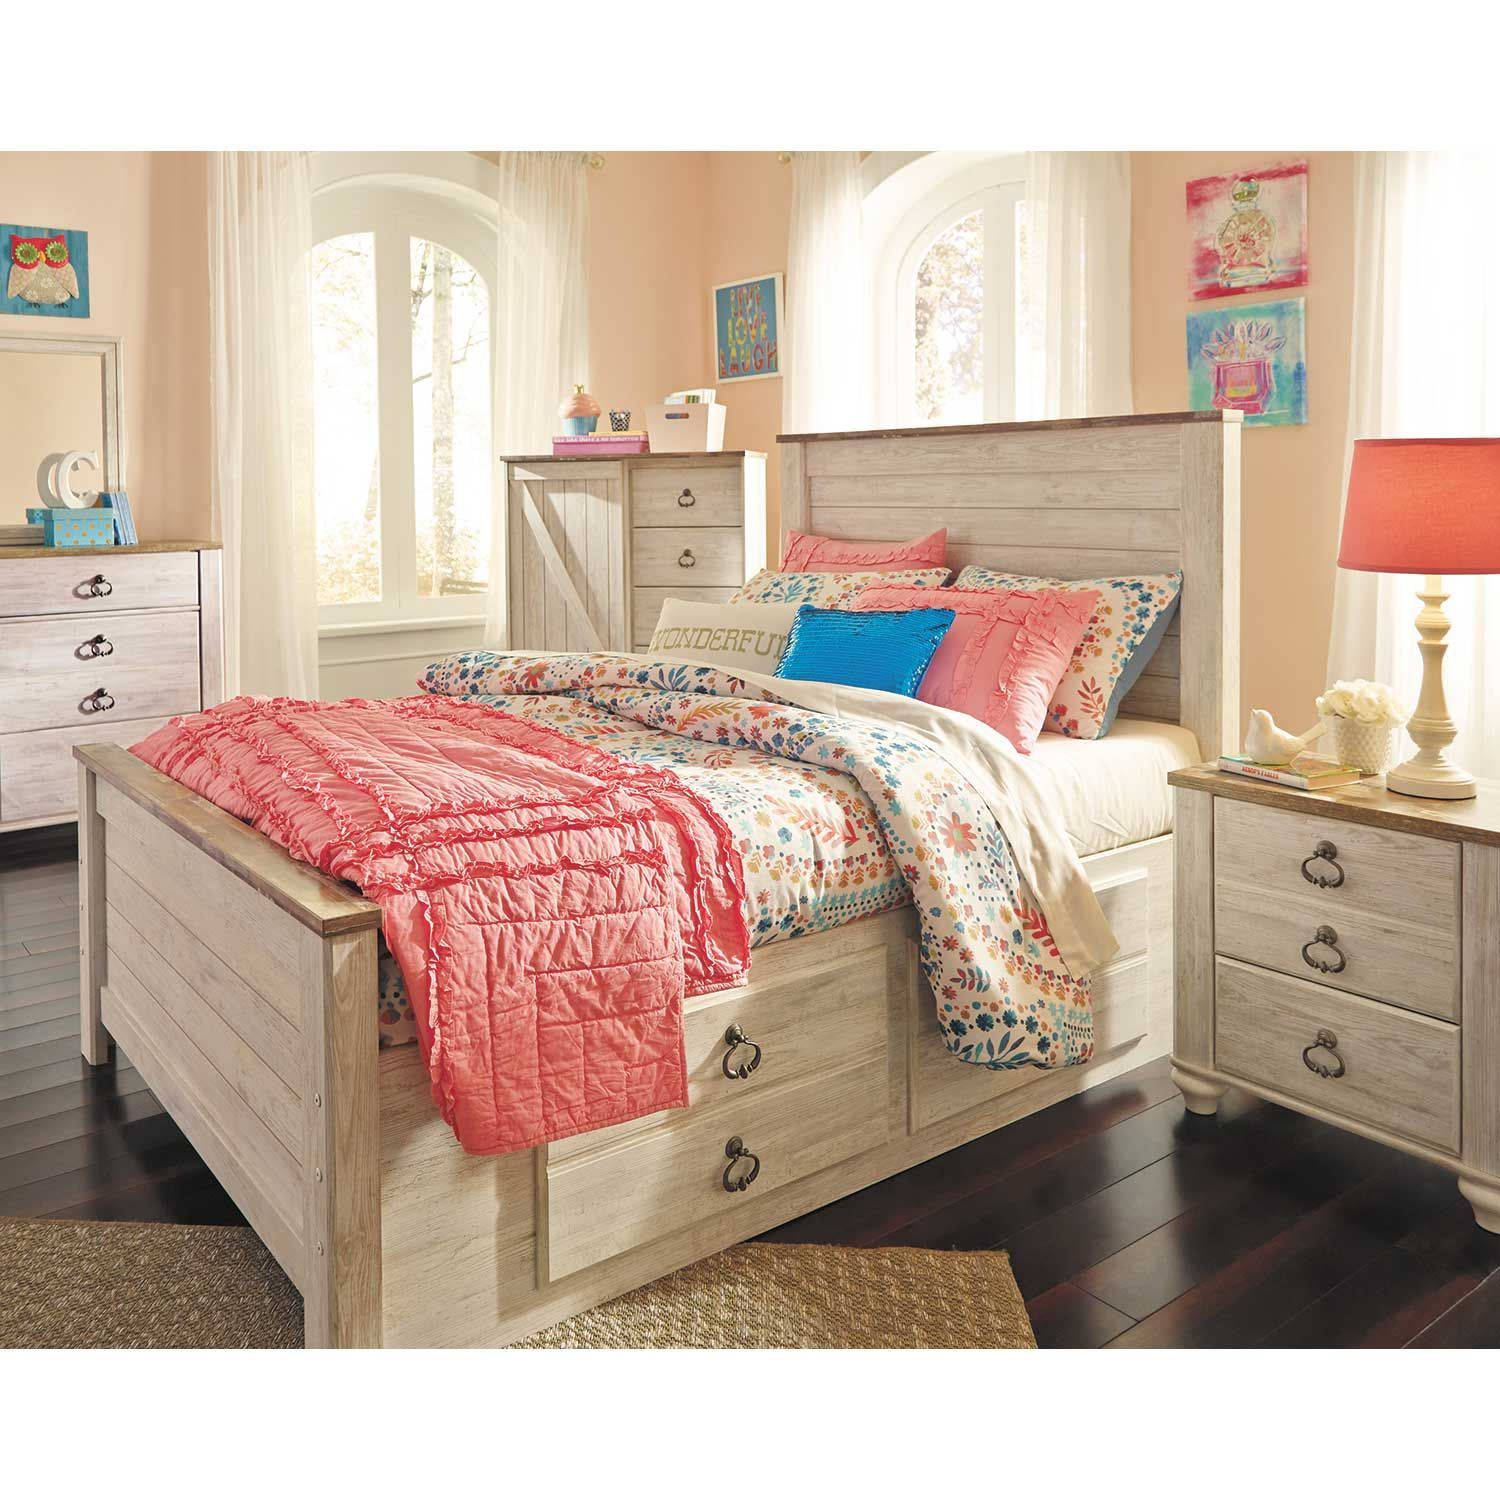 Ashley Furniture Manufacturing: Willowton Full Storage Bed